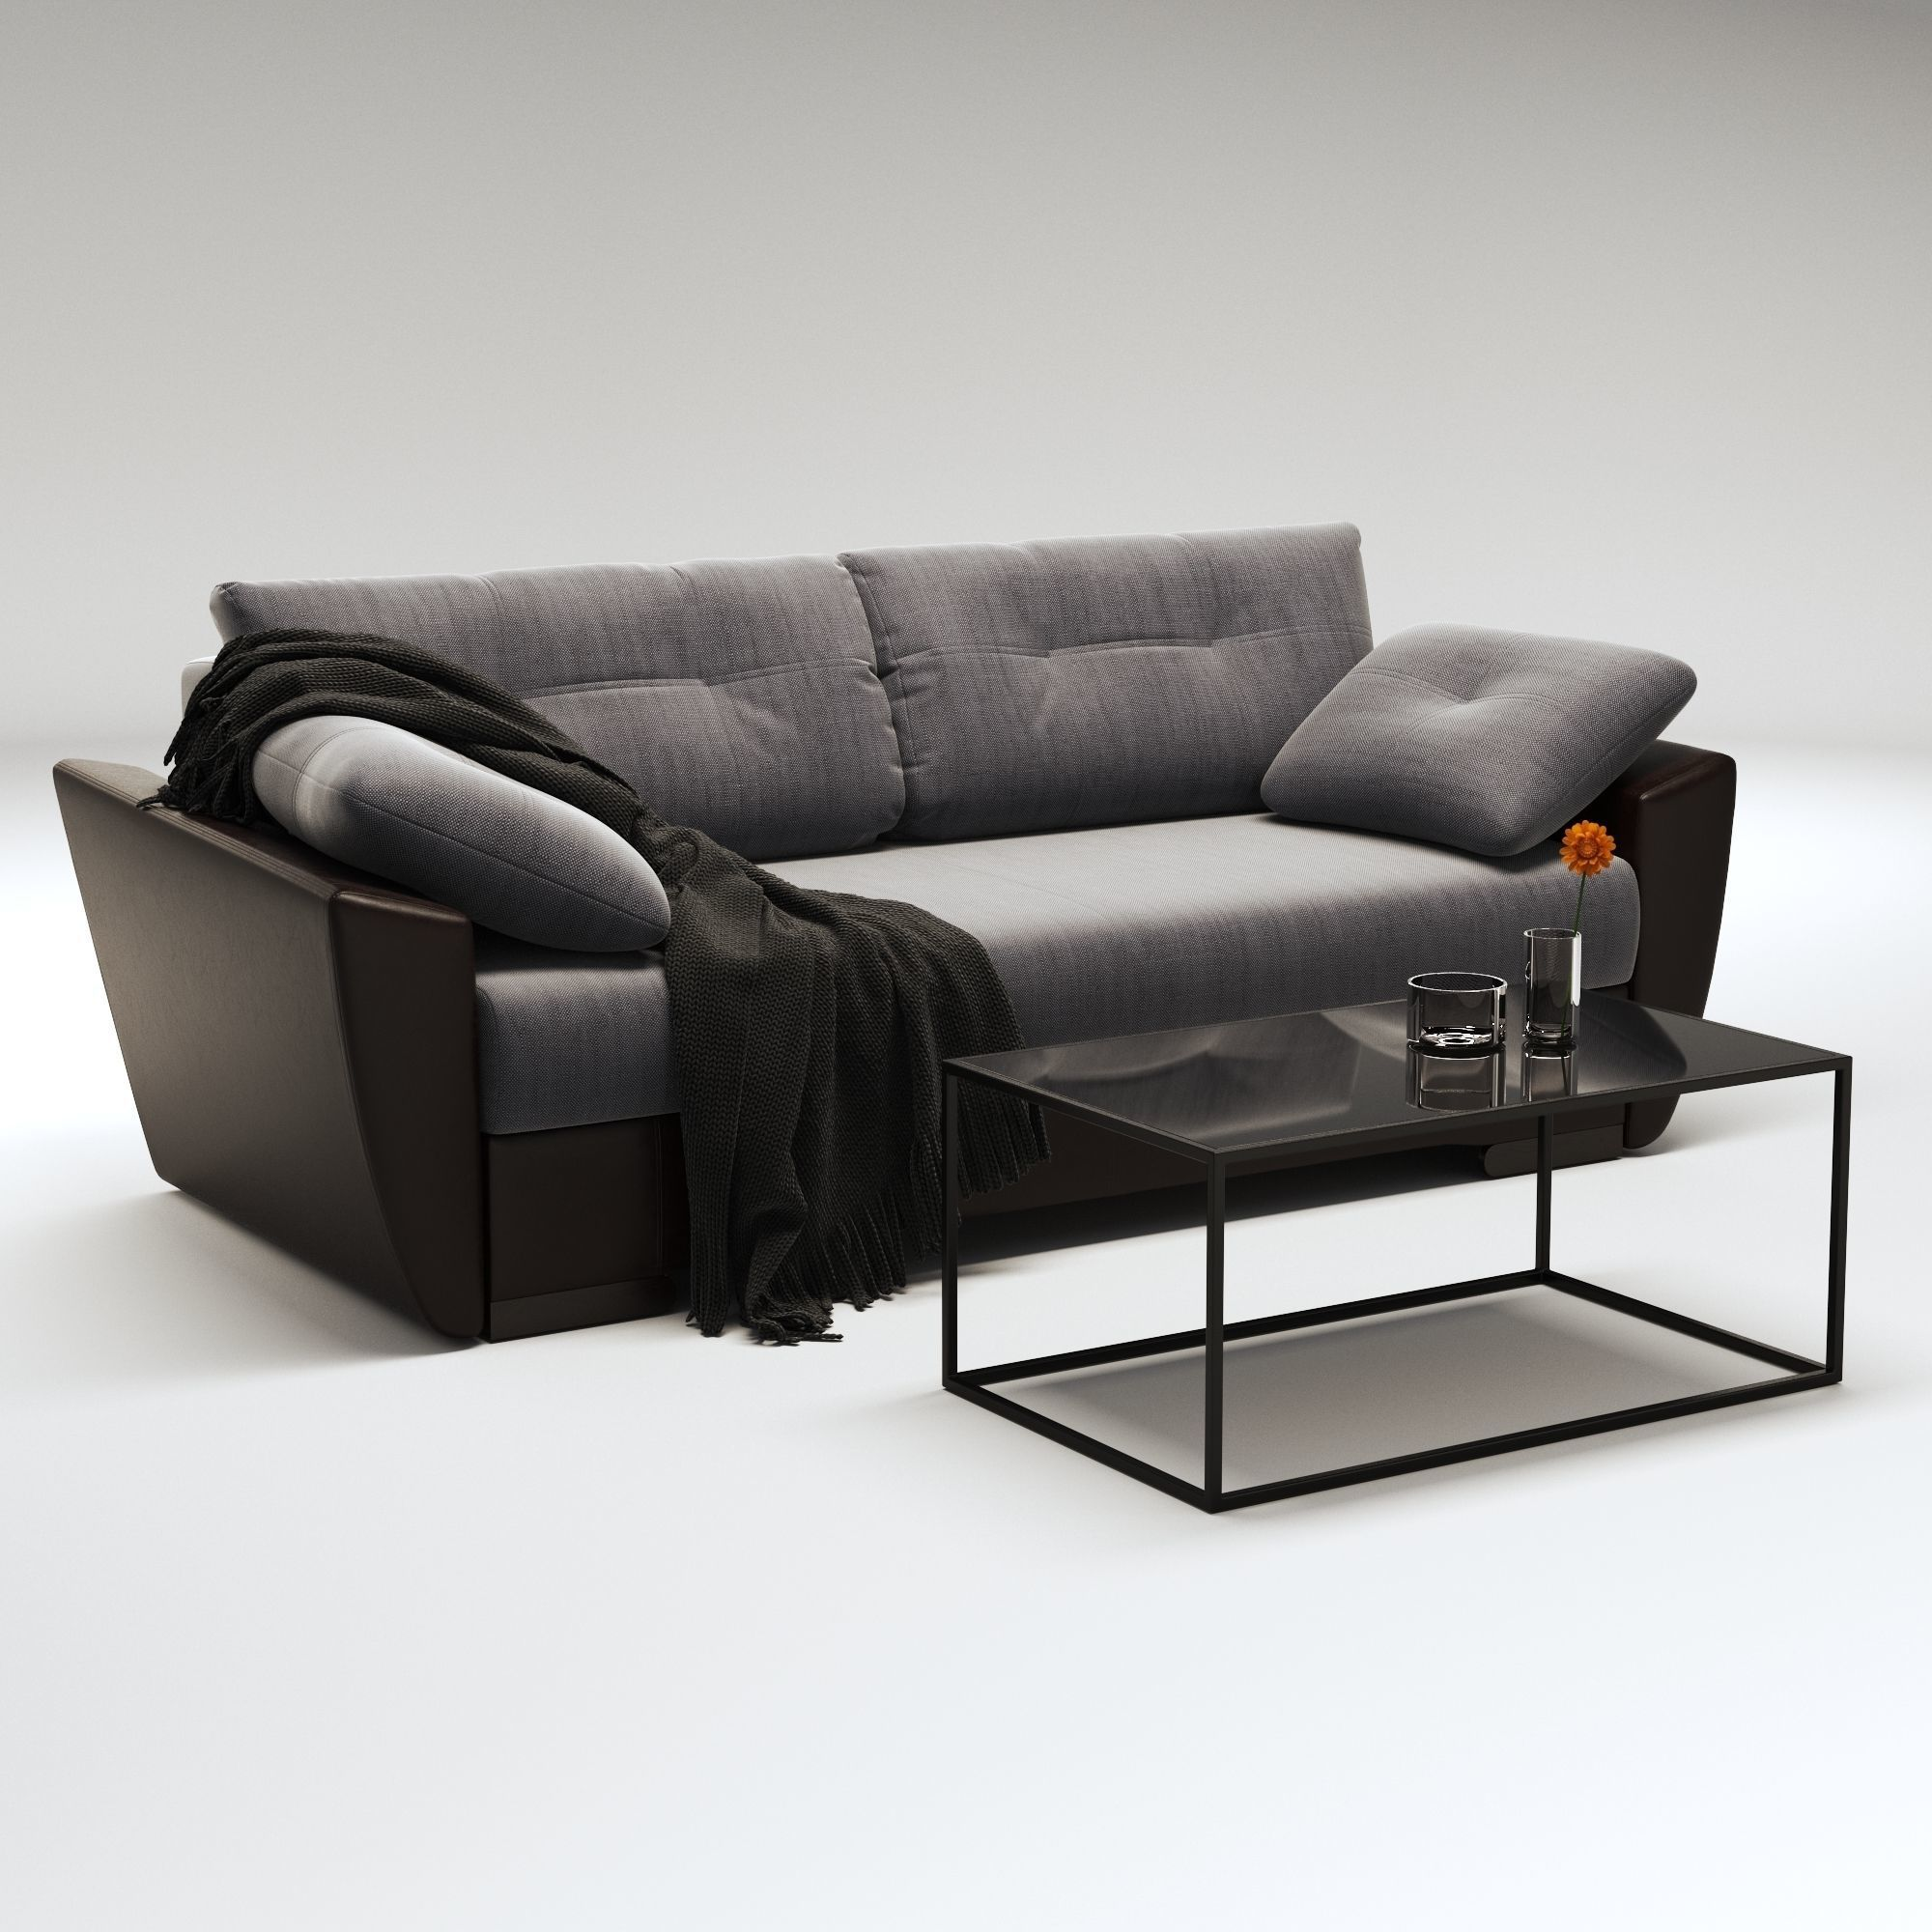 Sofa Beds Amsterdam Sofa Amsterdam 3d Model